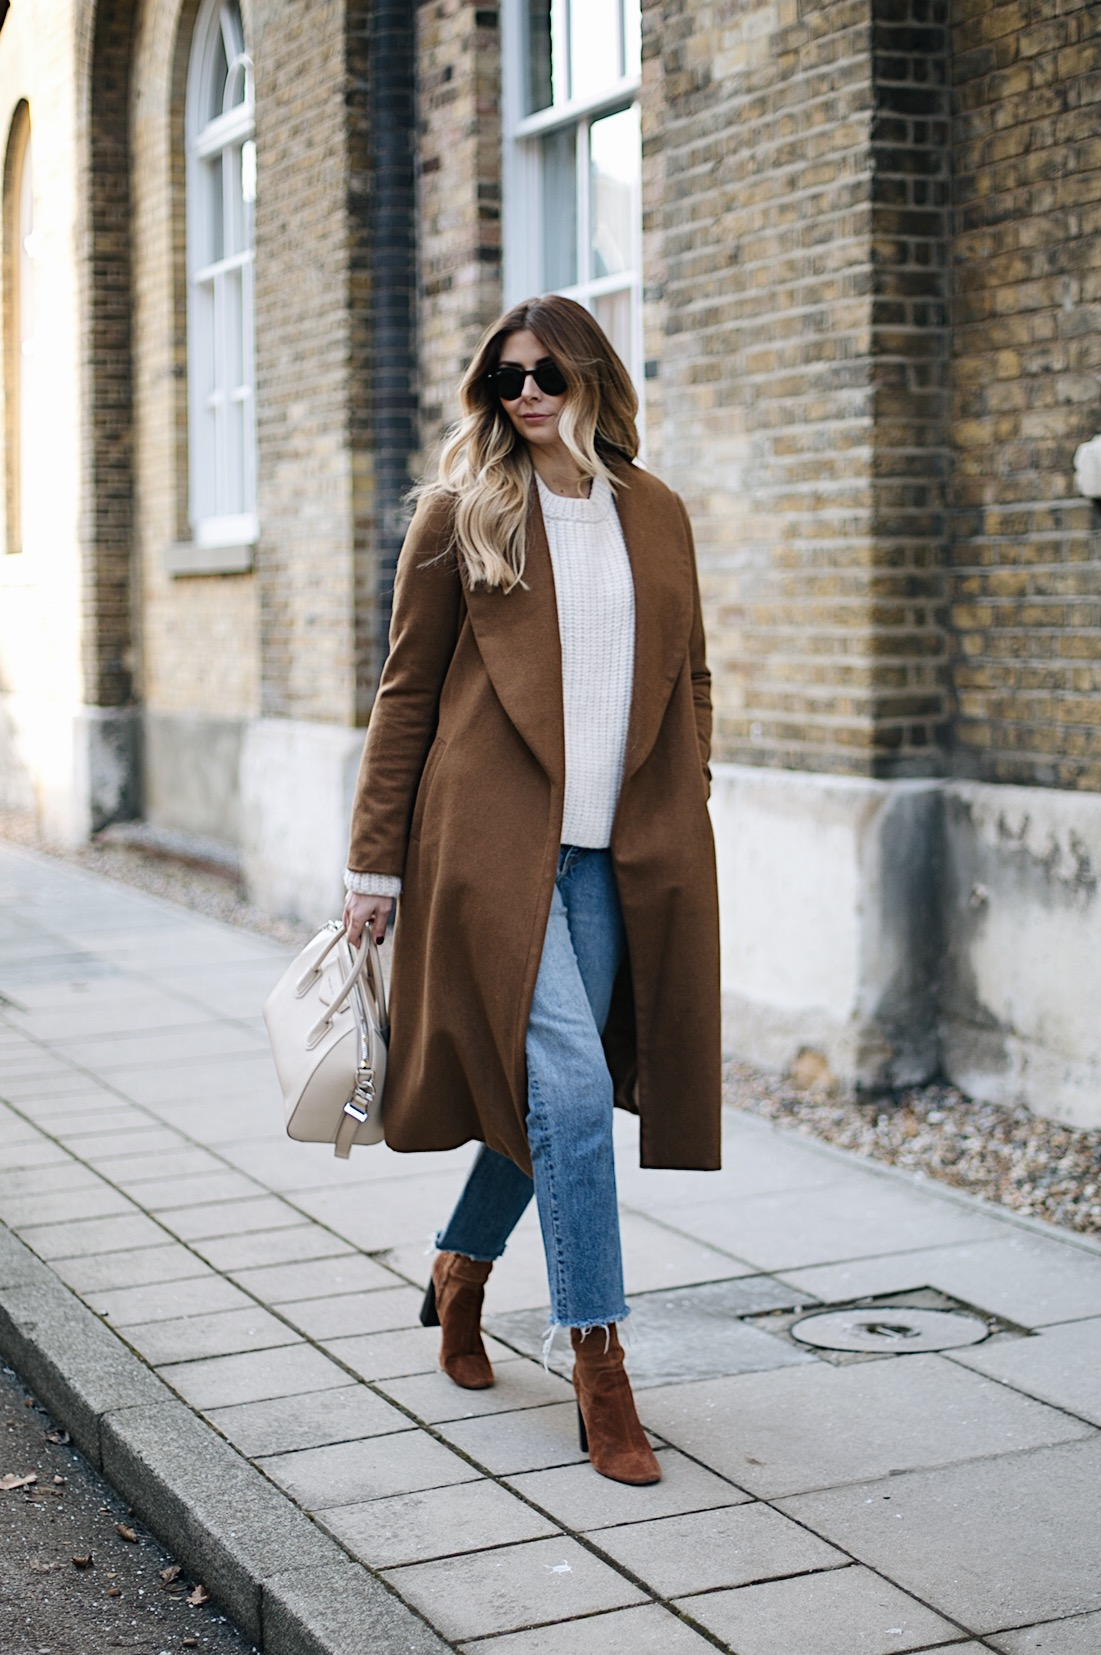 Emma Hill wears Tan coat, cream sweater, frayed hem jeans, givenchy antigona small ivory, tan suede boots, winter outfit